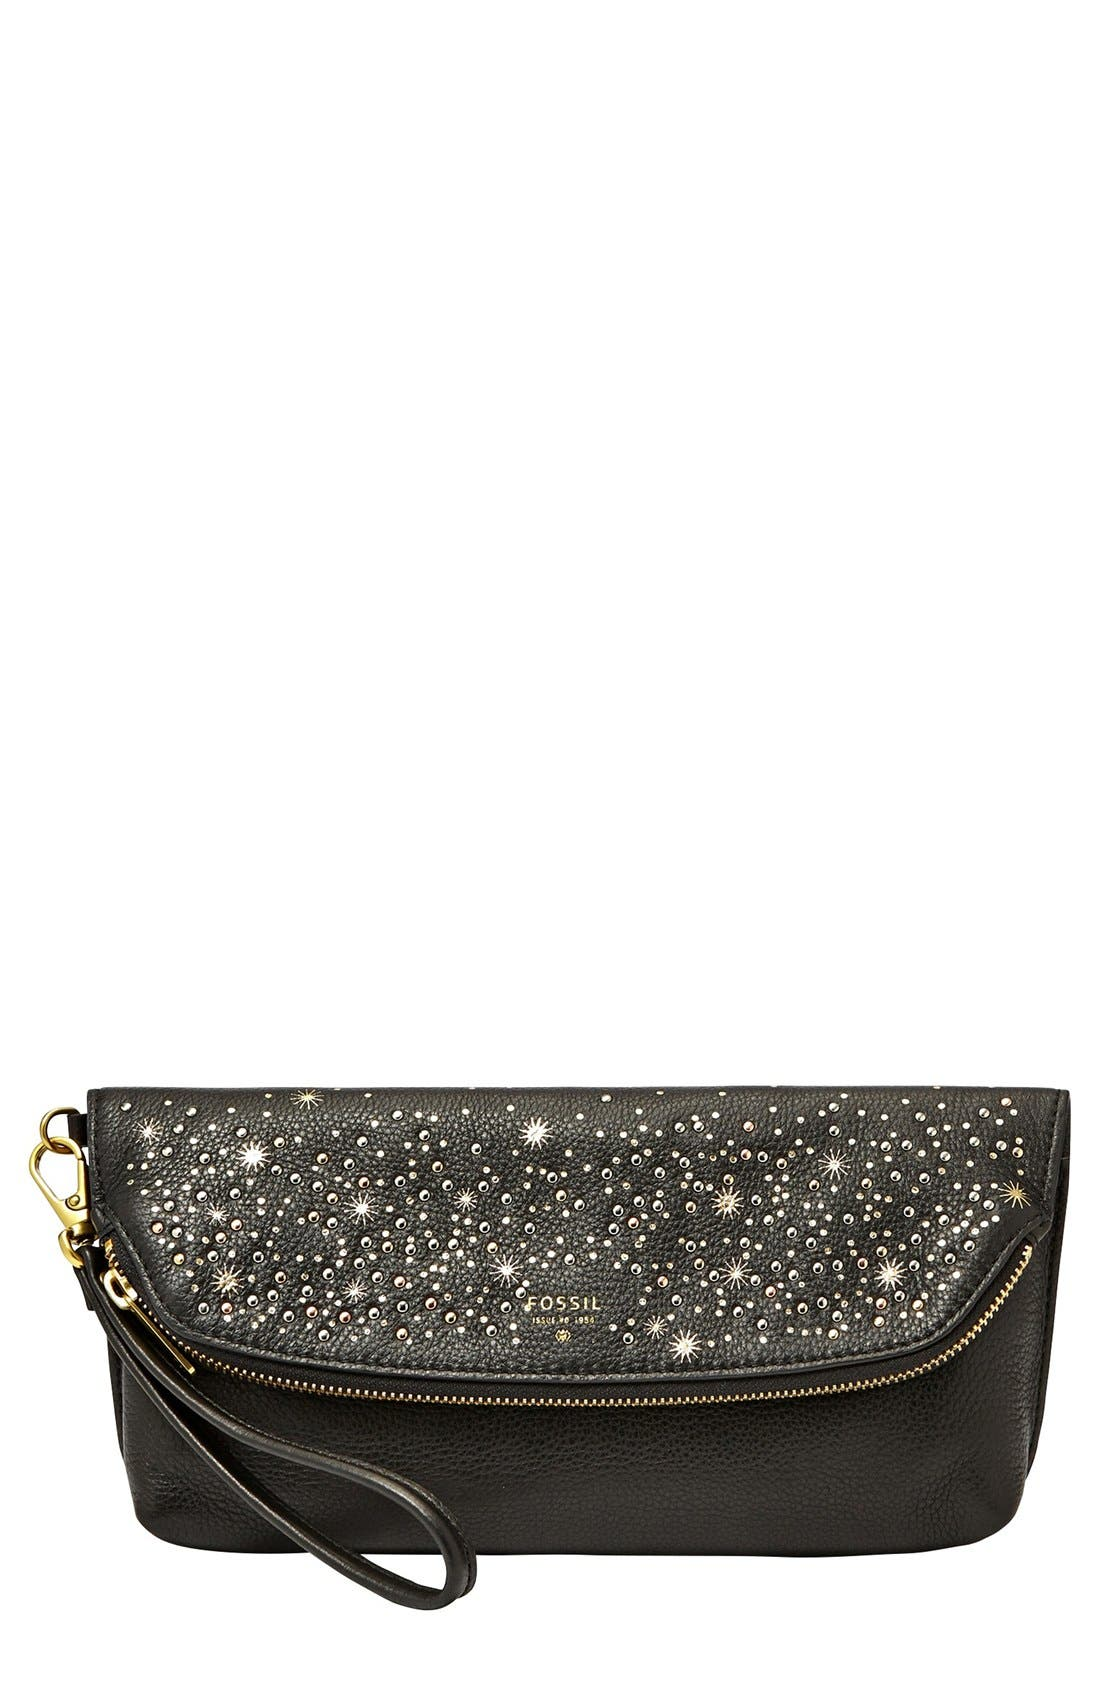 Main Image - Fossil 'Preston' Leather Foldover Clutch